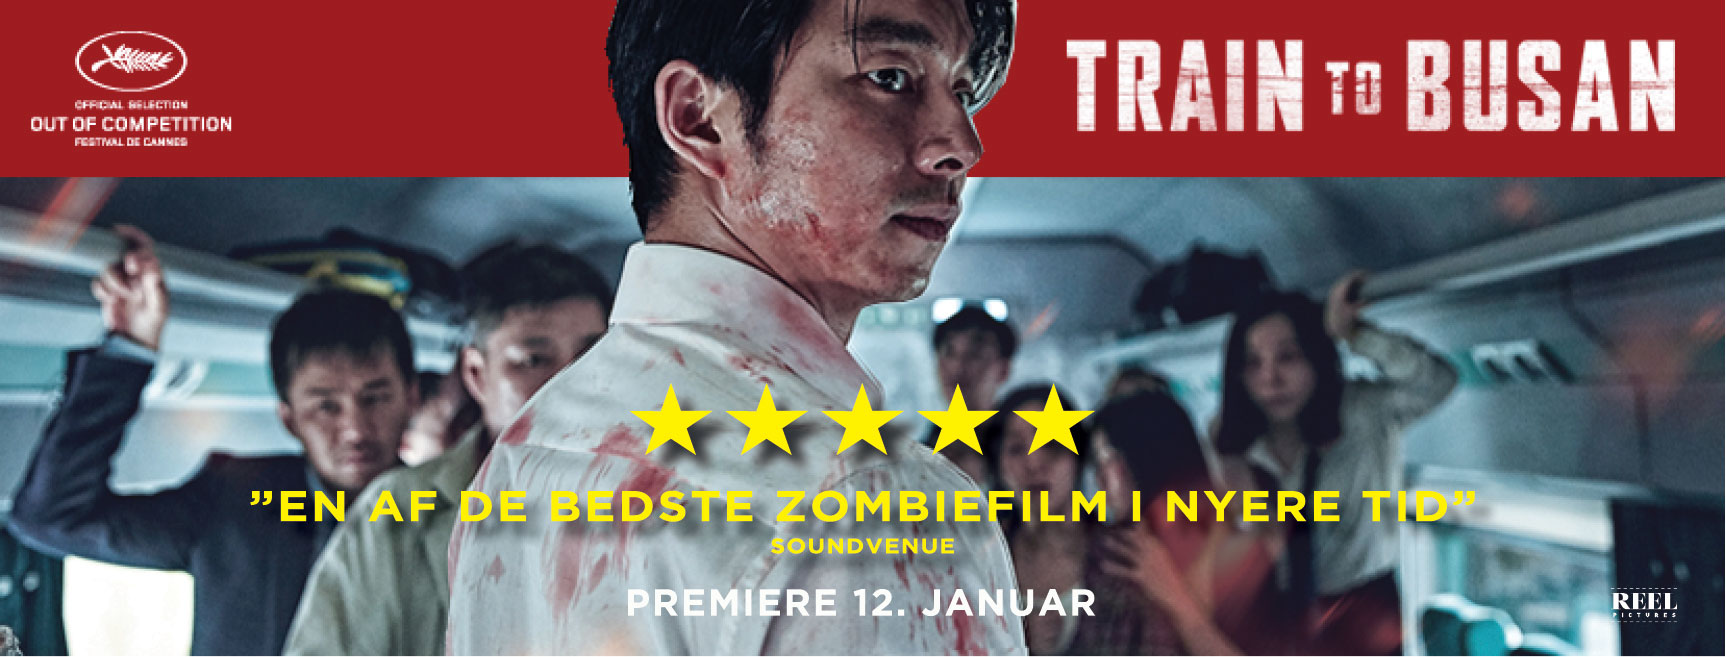 Facebook cover for Train to Busan